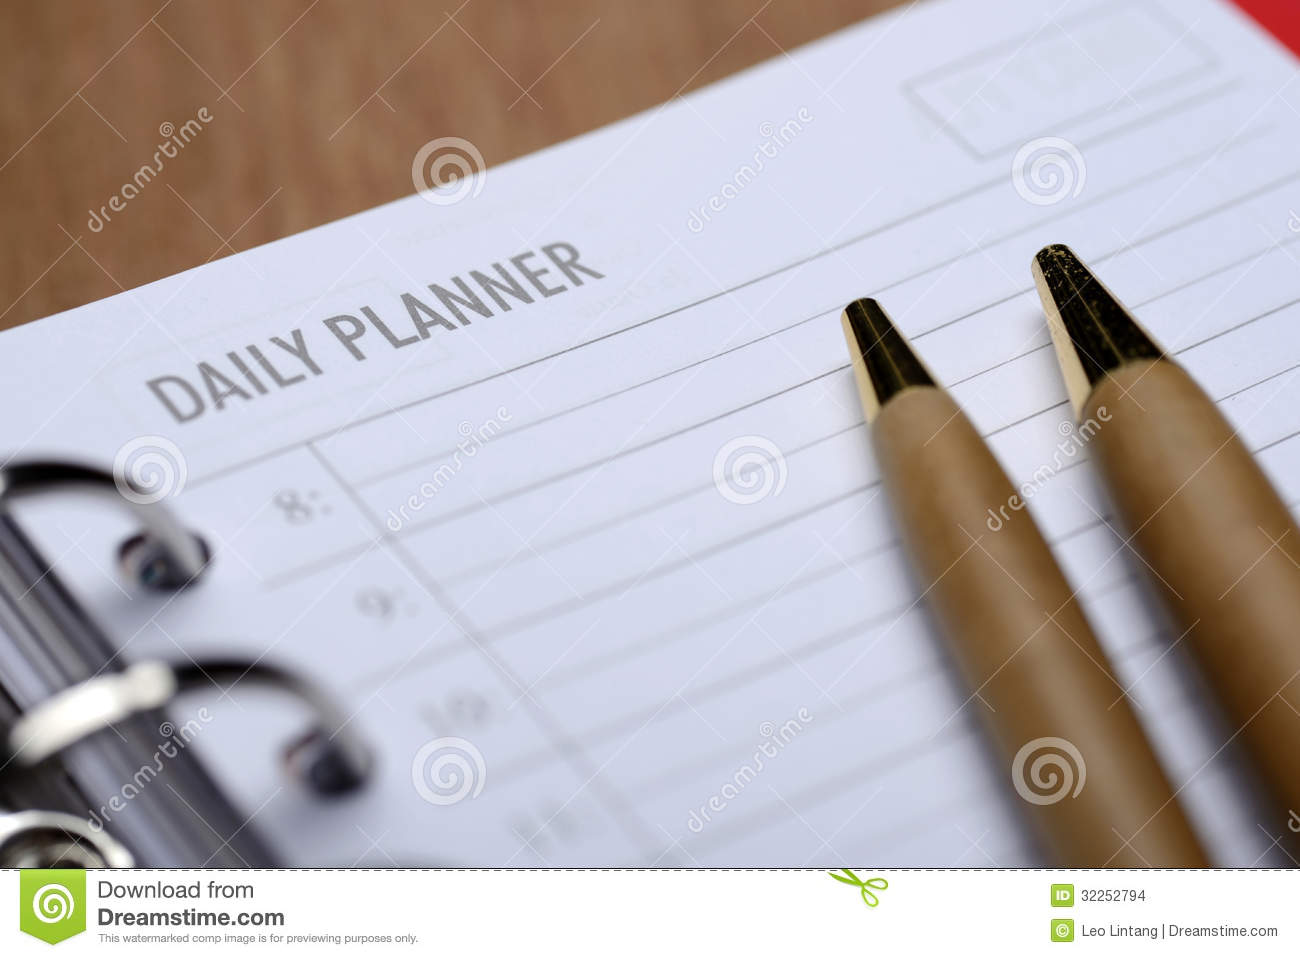 daily planner concept stock photo  image of agenda  notes